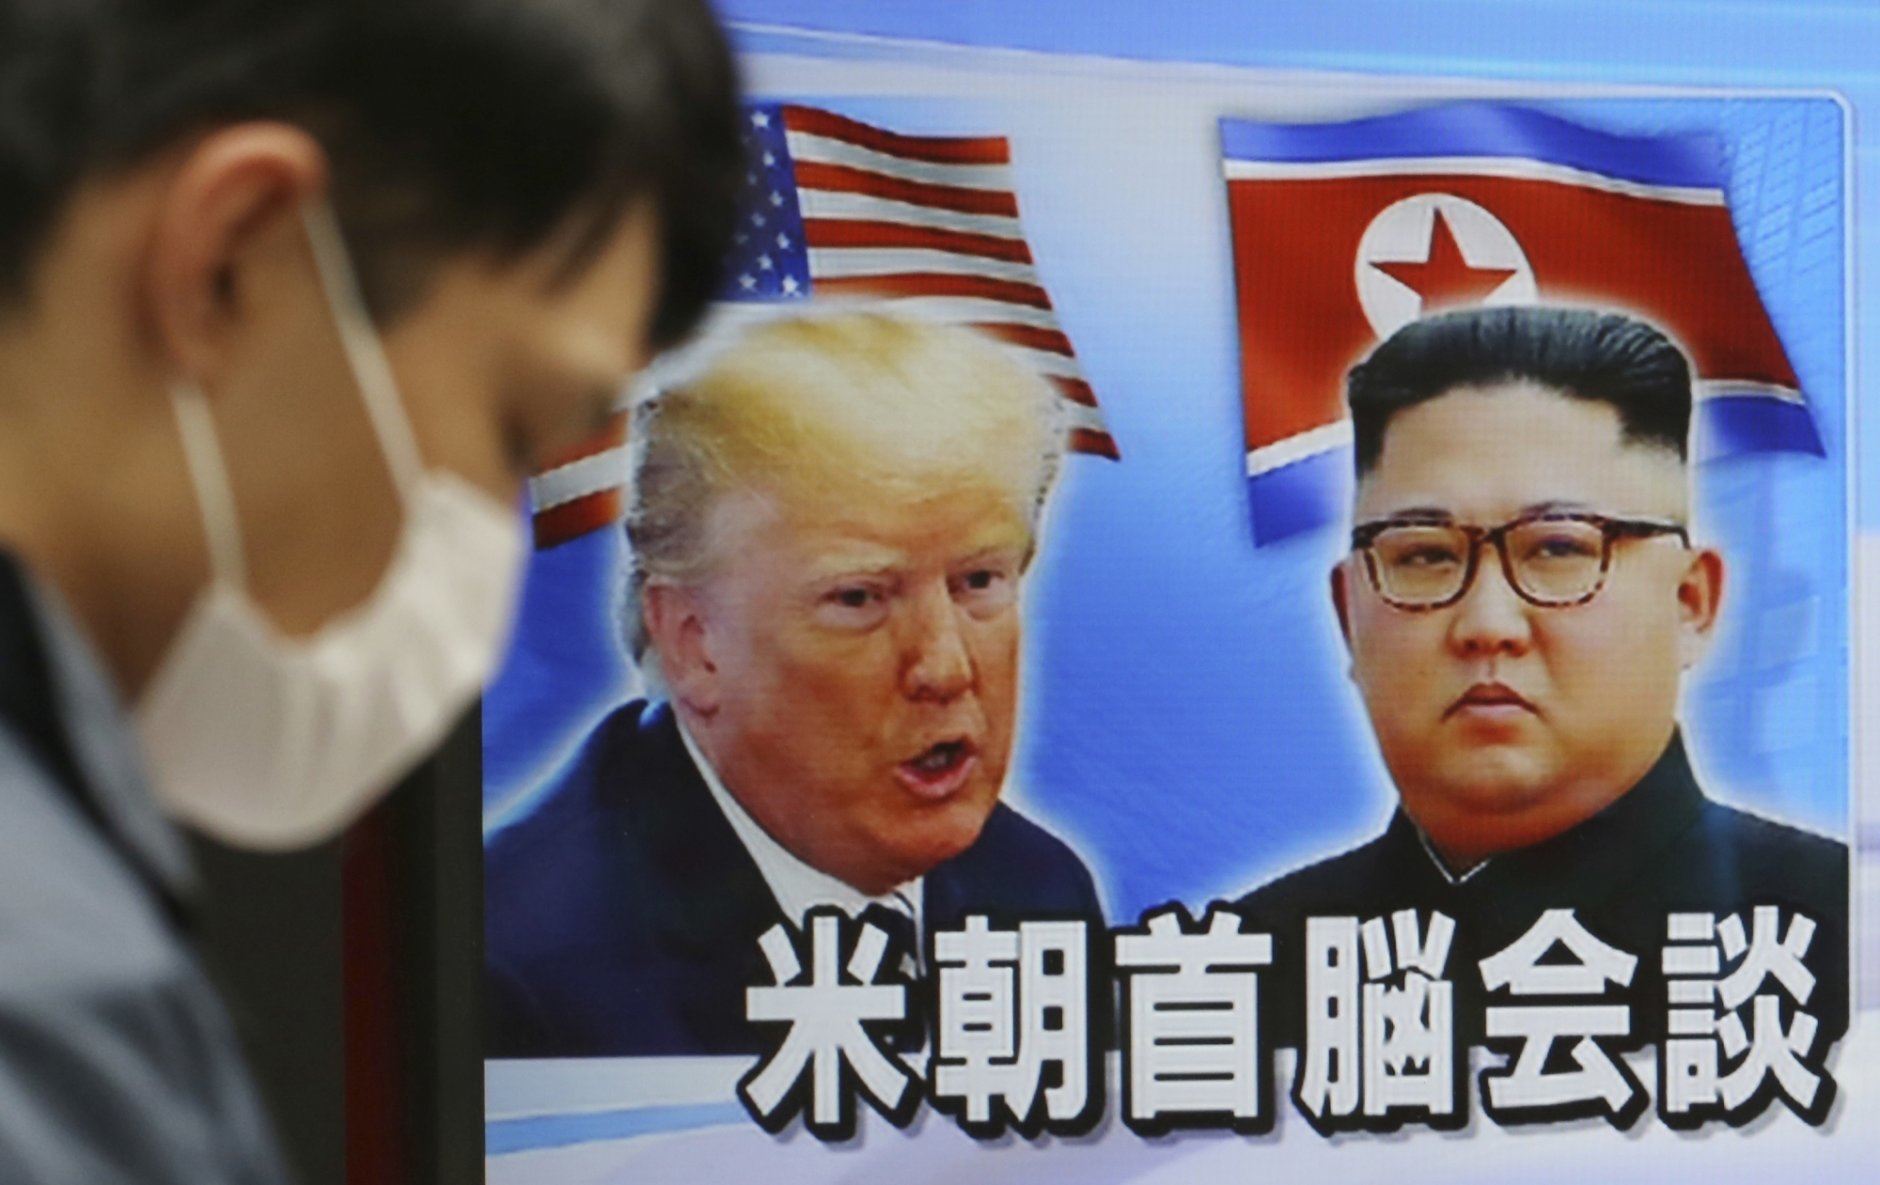 A man walks past a TV screen showing North Korean leader Kim Jong Un, right, and U.S. President Donald Trump in a news program in Tokyo, Wednesday, Feb. 27, 2019. Kim is expected to meet with Trump for a second summit over the next two days in Hanoi, Vietnam. (AP Photo/Koji Sasahara)